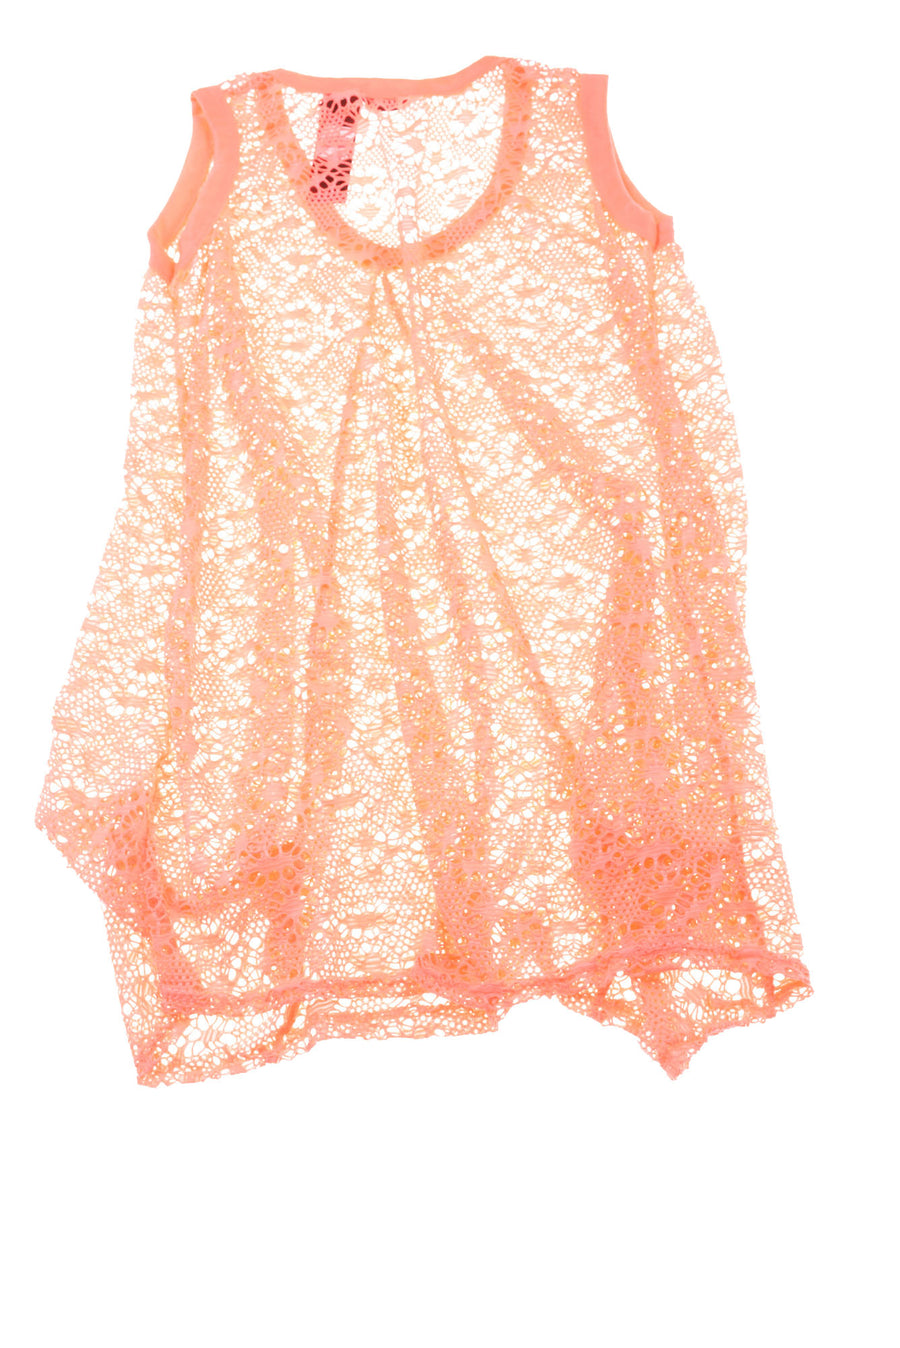 NEW Victoria Women's Cover Up Large/X-Large Orange